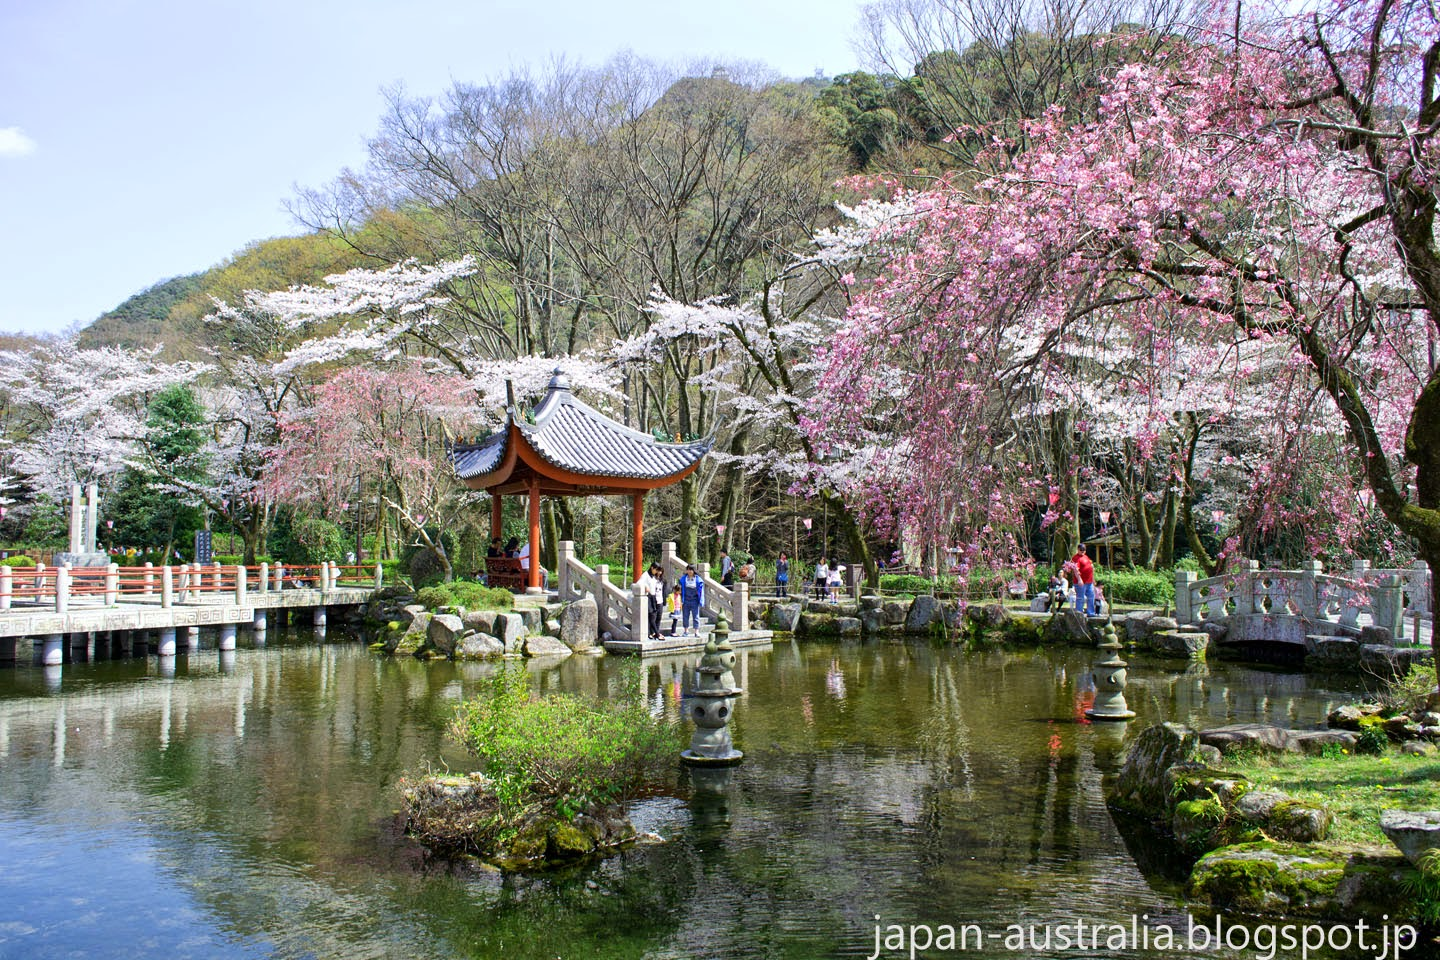 Gifu Japan  City pictures : Japan Australia: Japan and China Friendship Garden Gifu